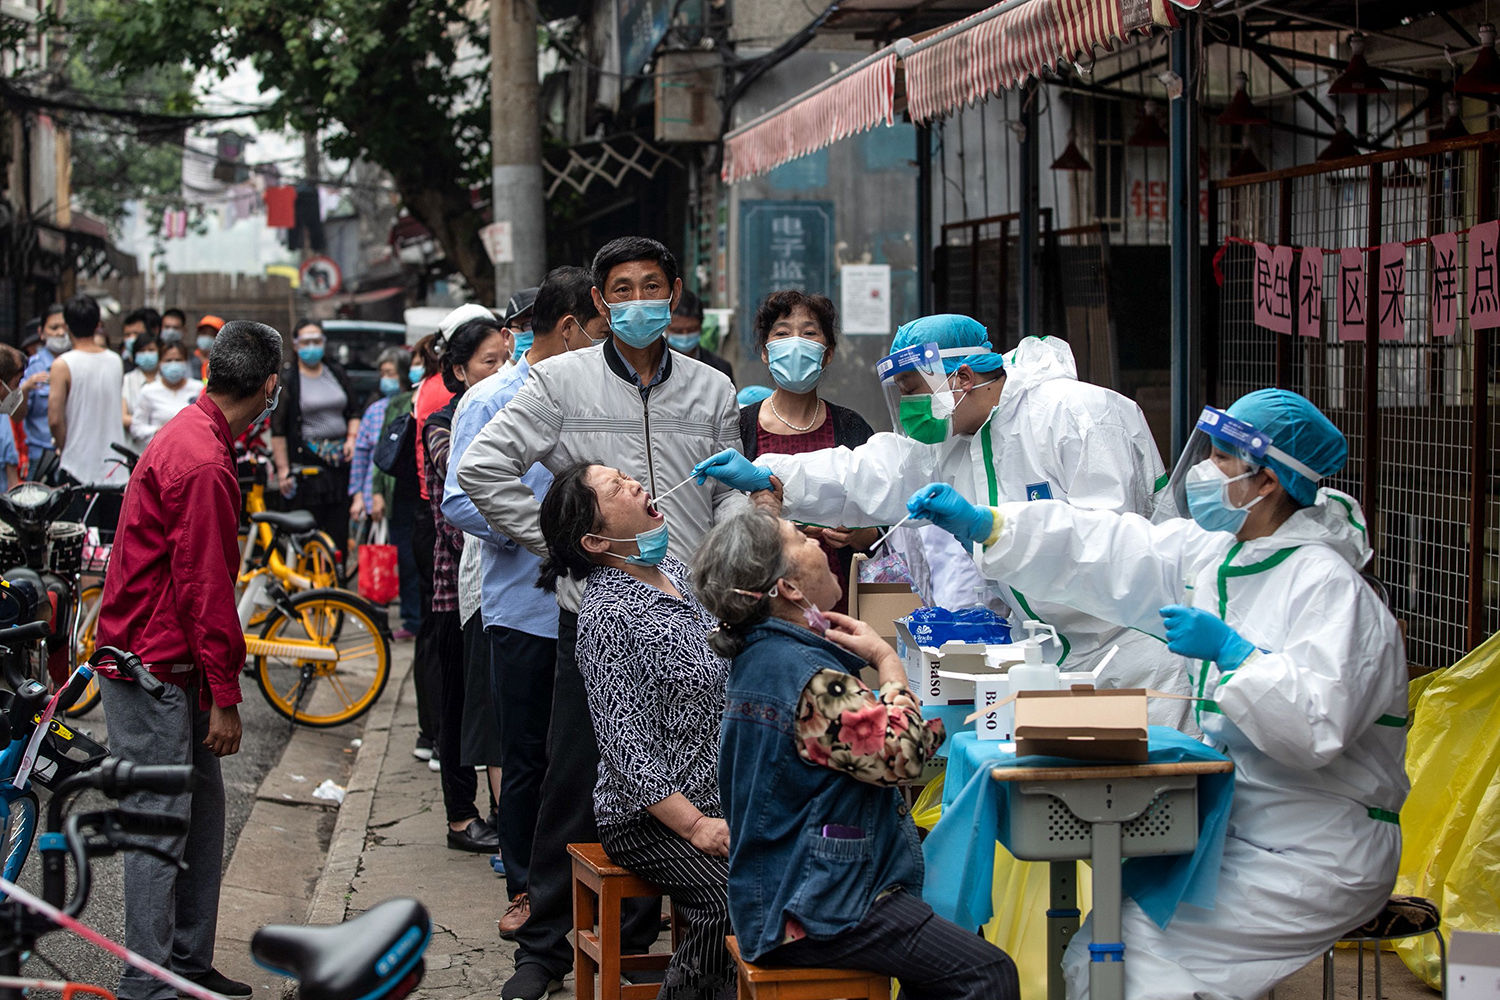 Medical workers test residents for COVID-19 on a street in Wuhan, China, on May 15. Wuhan authorities ordered mass testing for all 11 million residents after a new cluster of cases emerged. STR/AFP via Getty Images